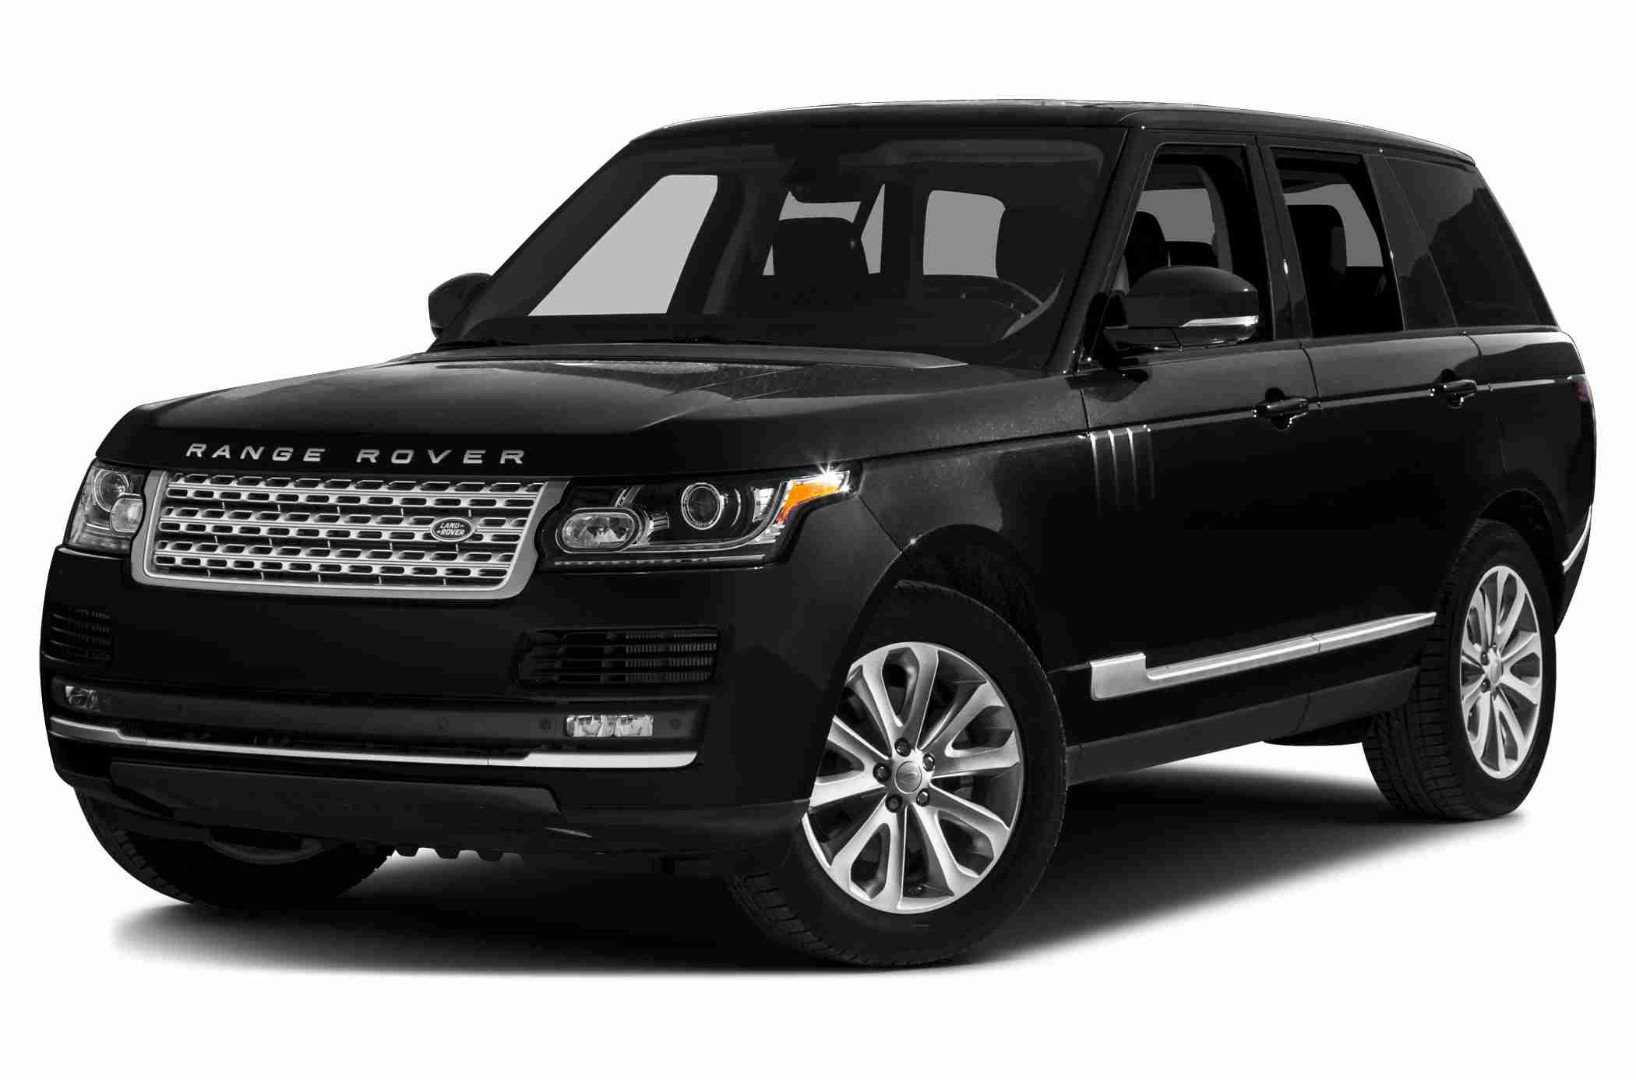 RANGE ROVER VOGUE 2012 - НАСТ.ВРЕМЯ